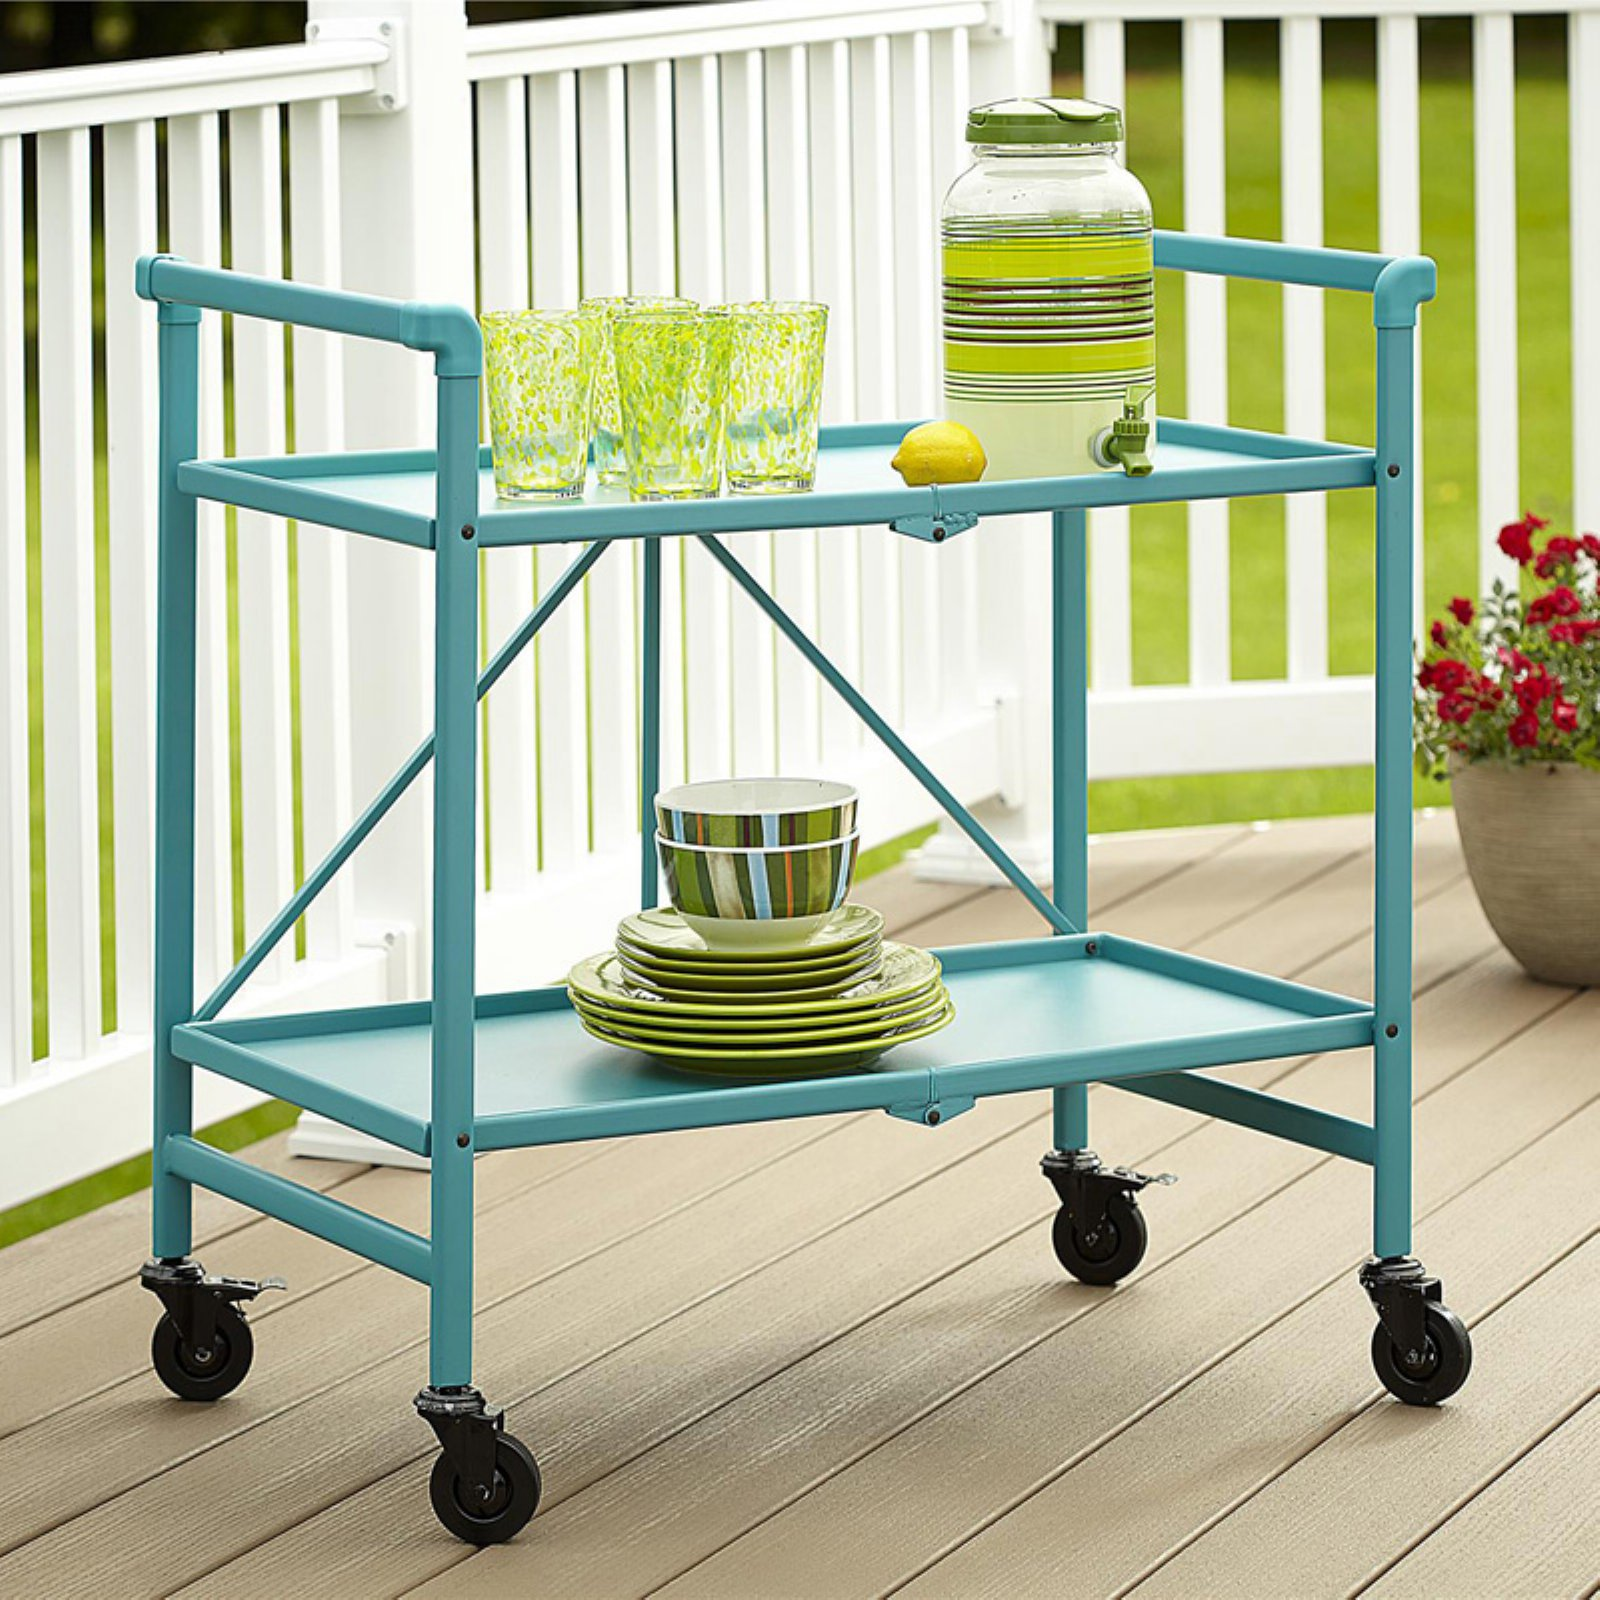 Cosco Folding Serving Cart, Multiple Colors by Cosco